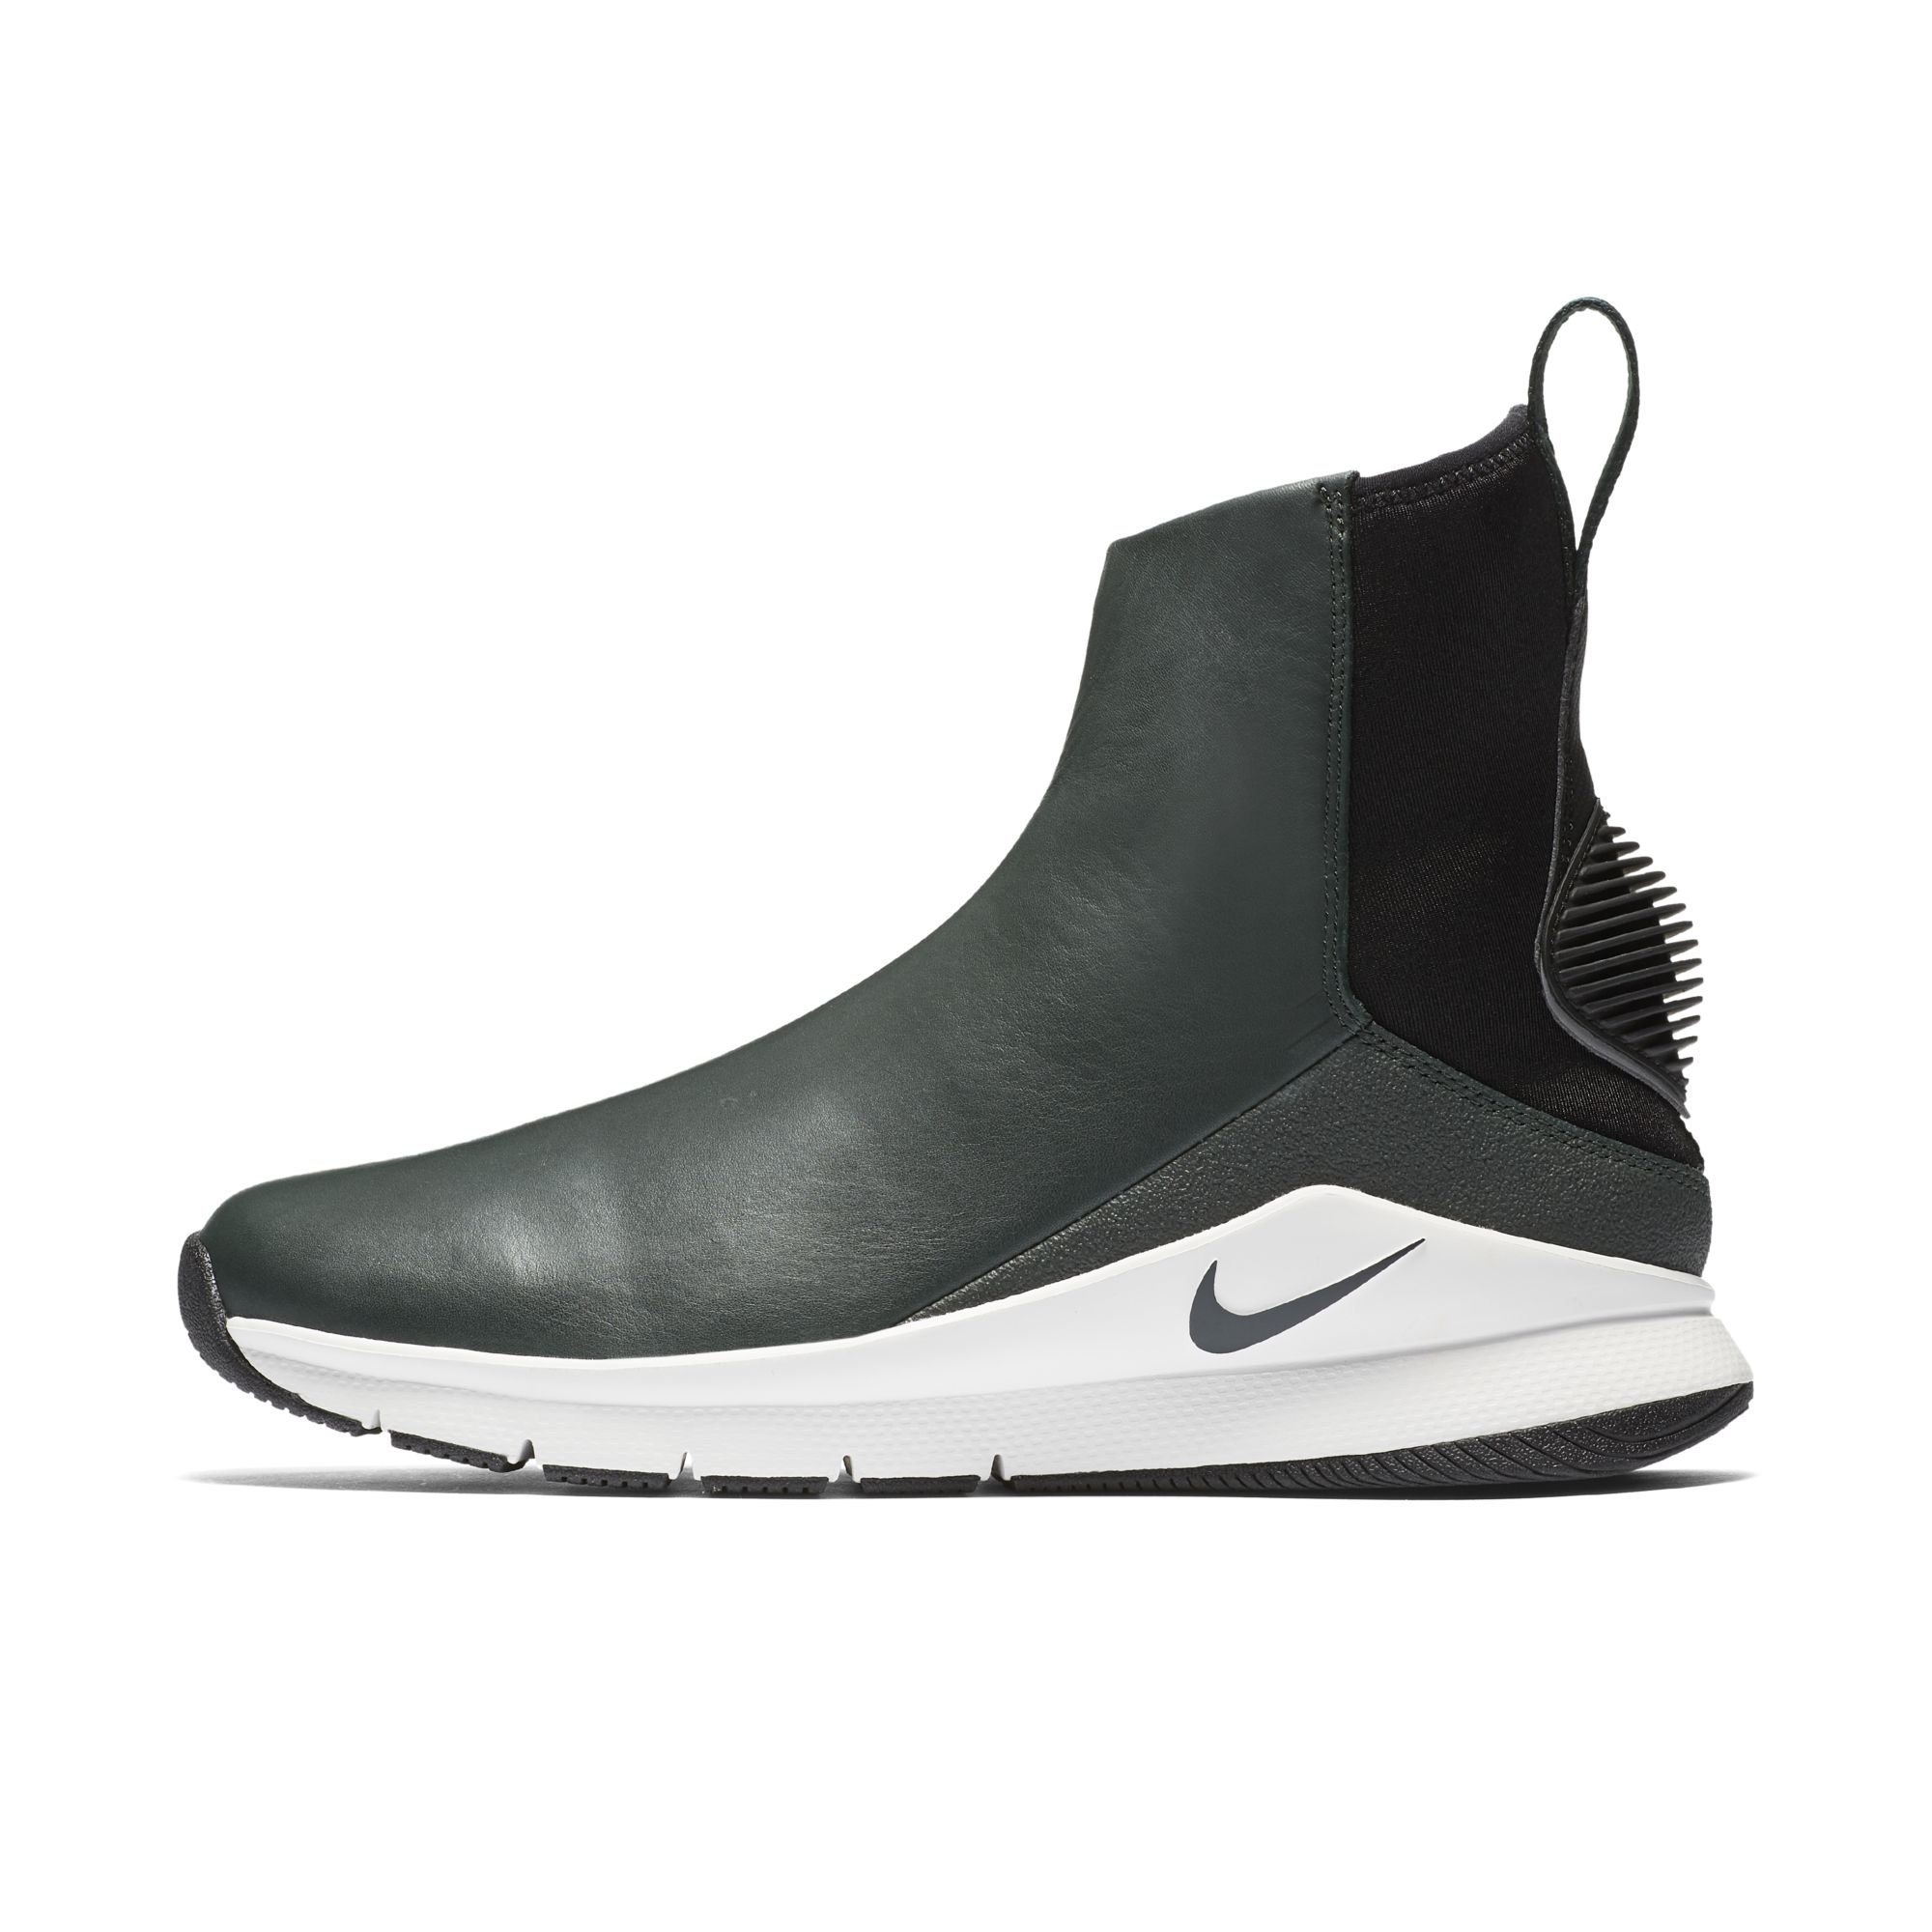 Nike Has a New Minimalist Boot, the Rivah High Premium ...